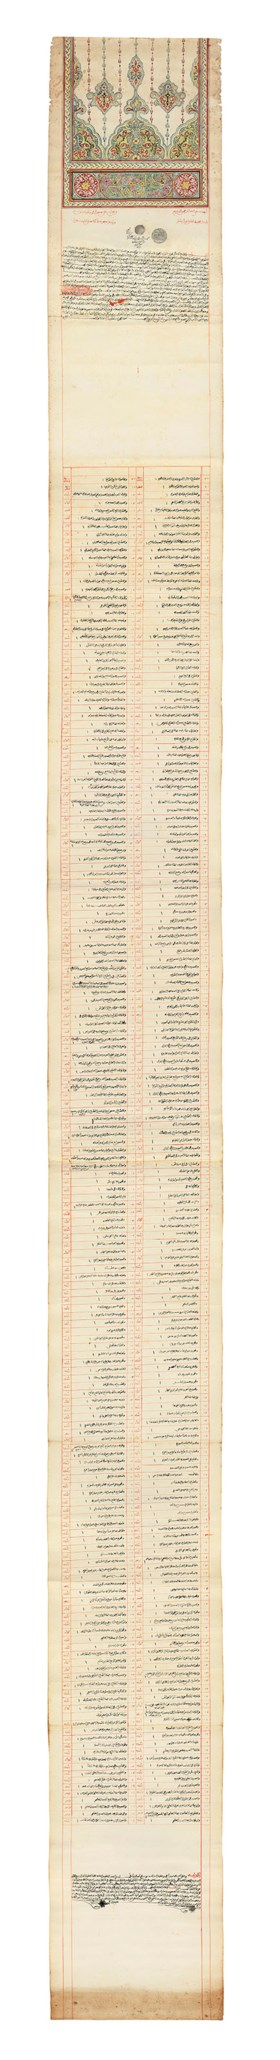 AN ILLUMINATED DOCUMENT RELATING TO DONATIONS TO MEDINA